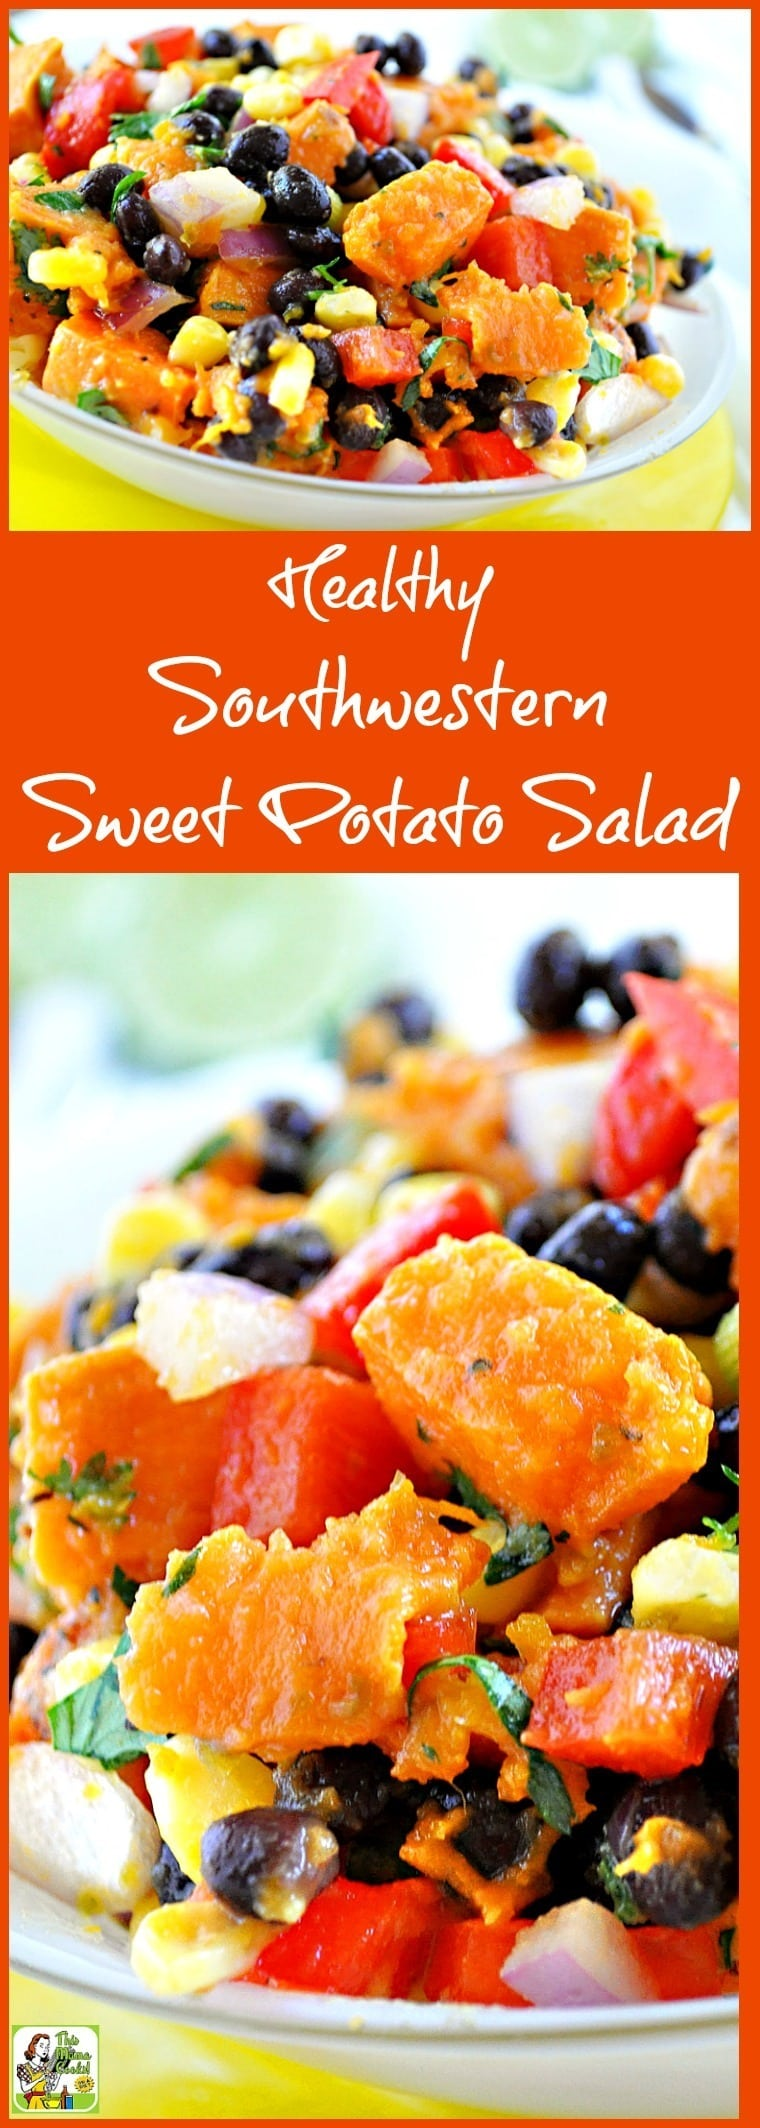 Try this Healthy Southwestern Sweet Potato Salad recipe! This cold sweet potato recipe is ideal for bbqs and potluck parties. Click to get this healthy, gluten free, and easy to make sweet potato salad recipe!